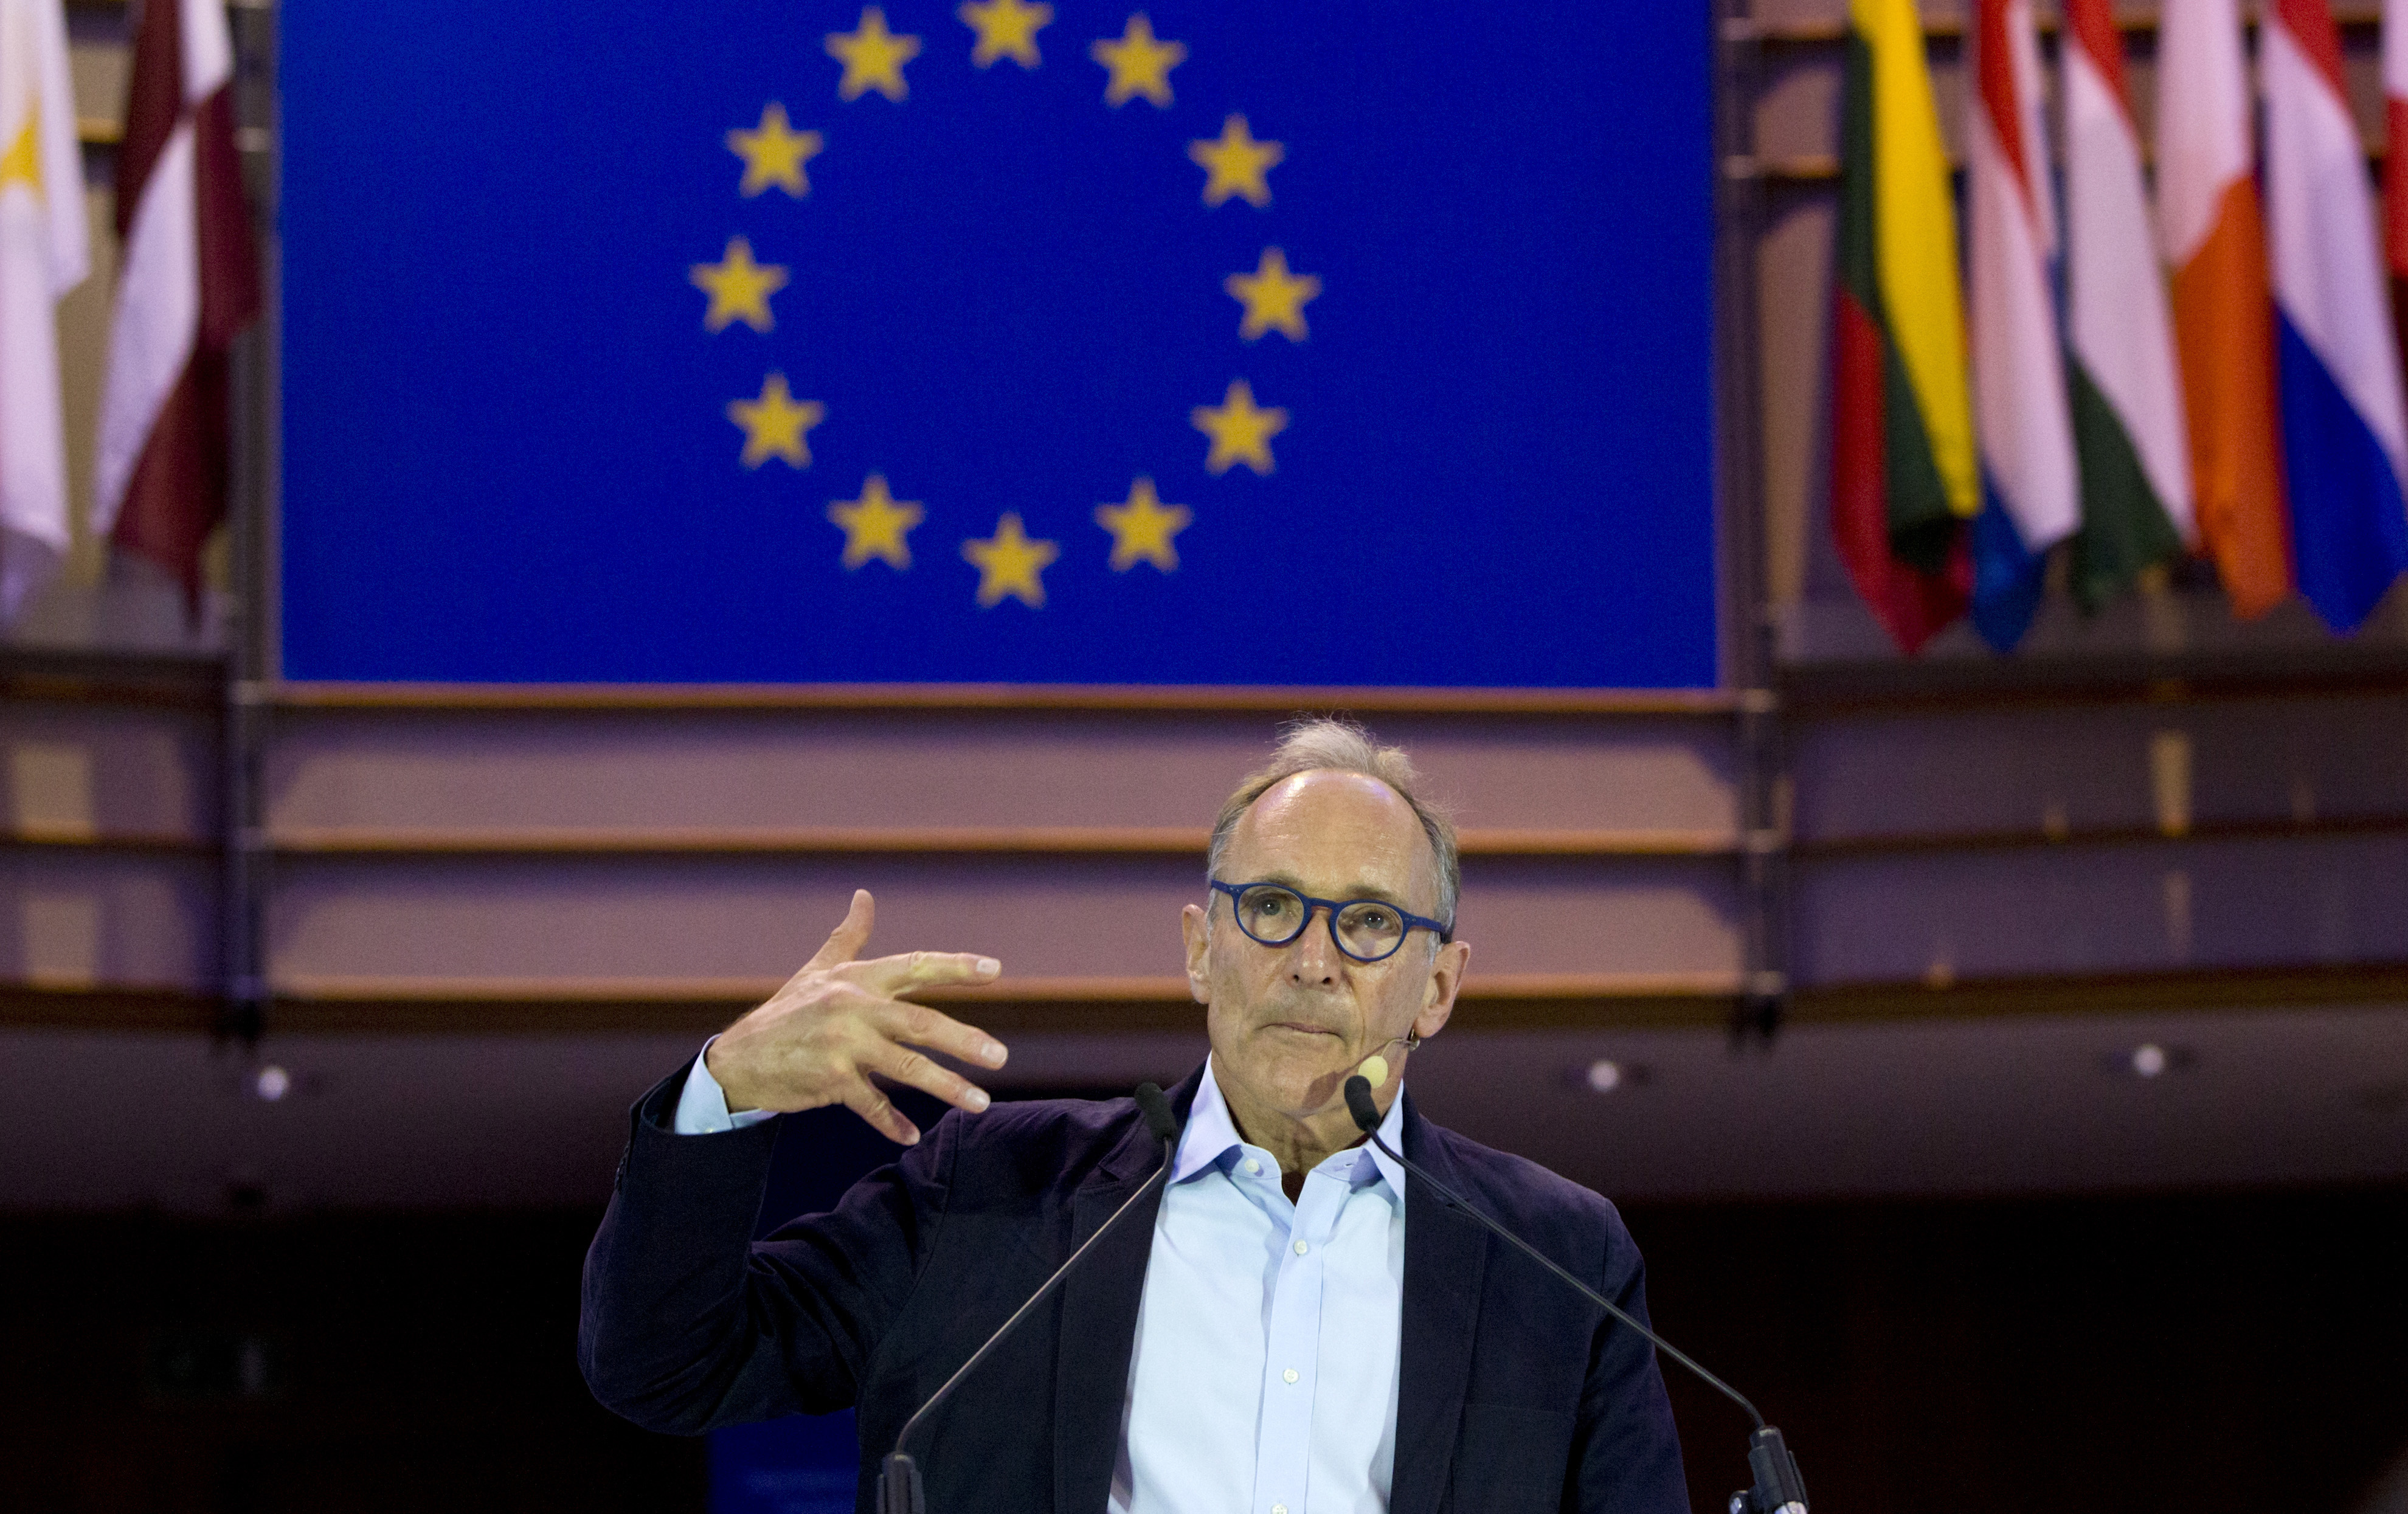 This Oct. 24, 2018, file photo shows creator of the World Wide Web Sir Tim Berners-Lee speaking during a data privacy conference at the European Parliament in Brussels.